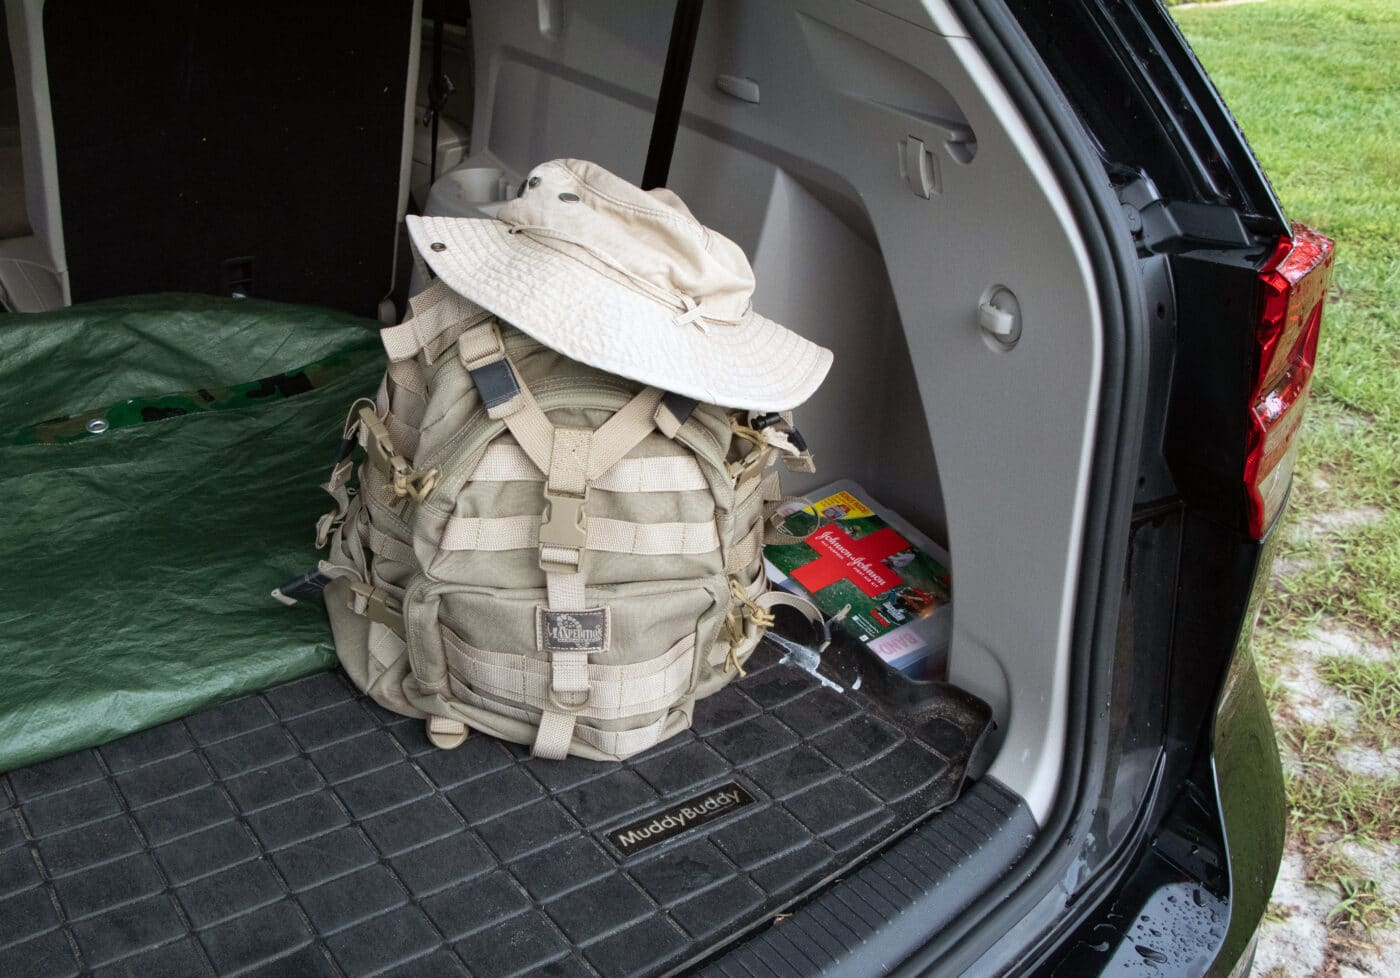 Get home bag shown in back of vehicle